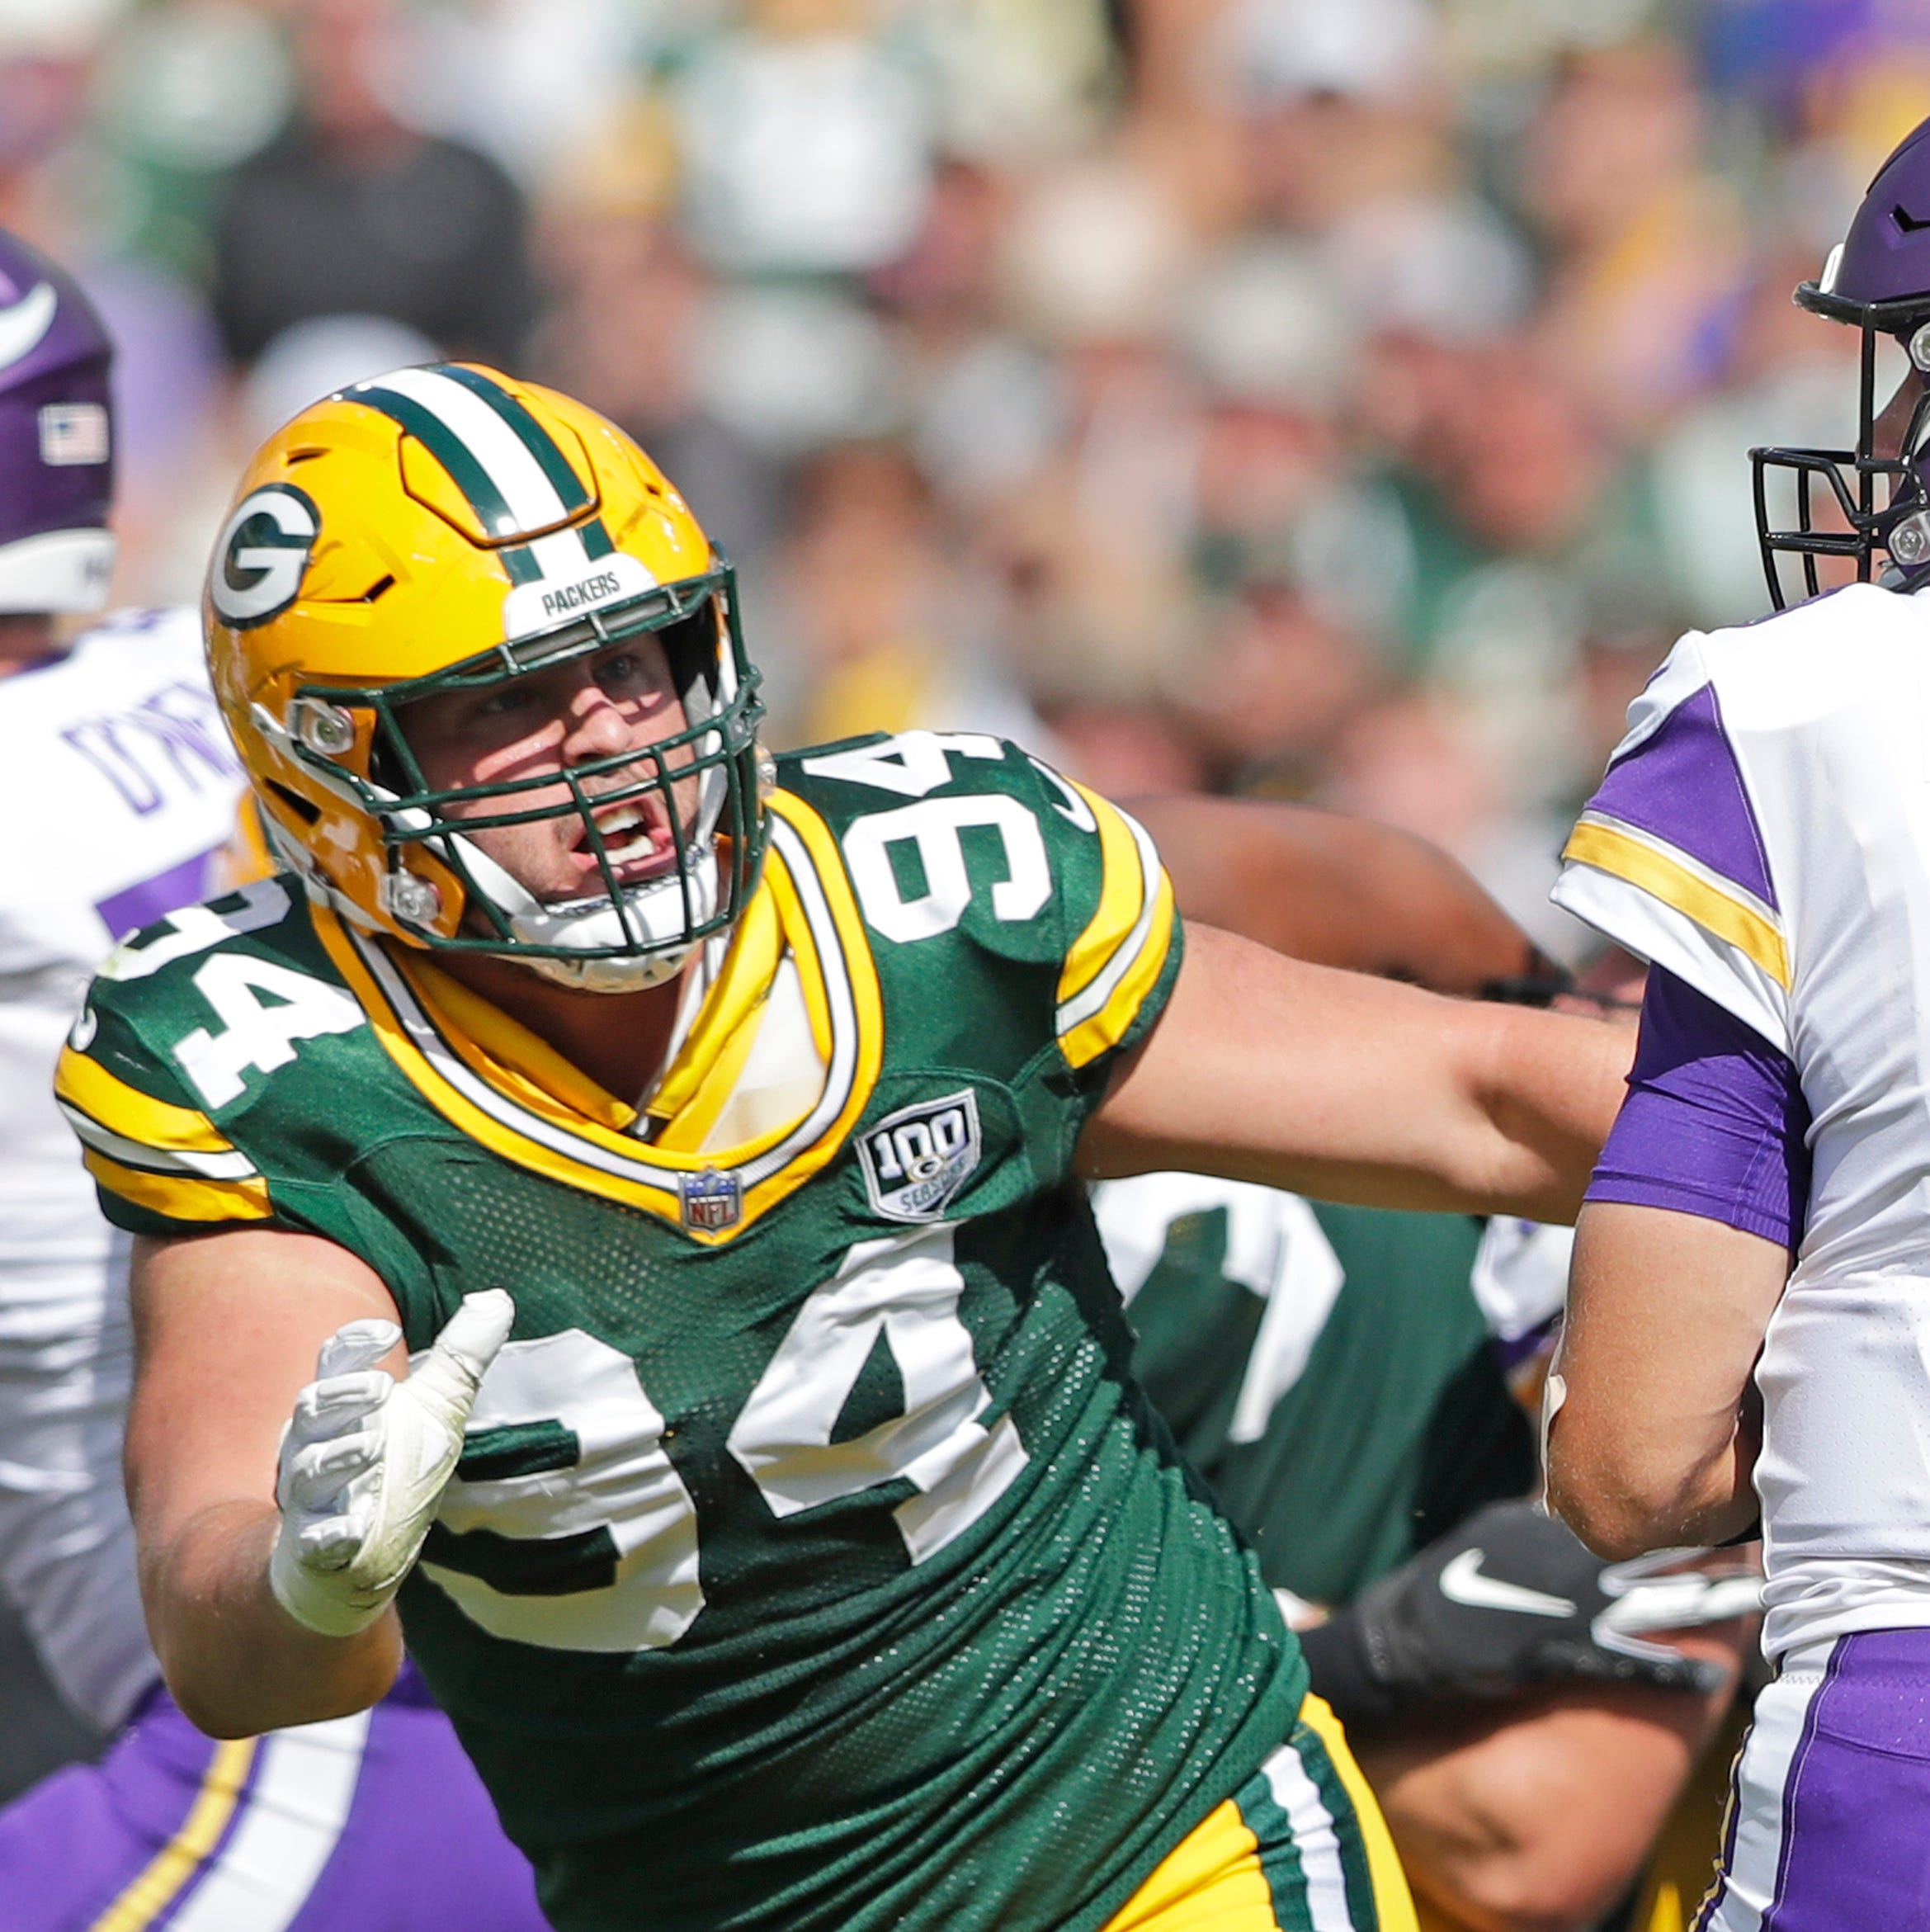 4 Downs: Packers will need more from Dean Lowry, Montravius Adams